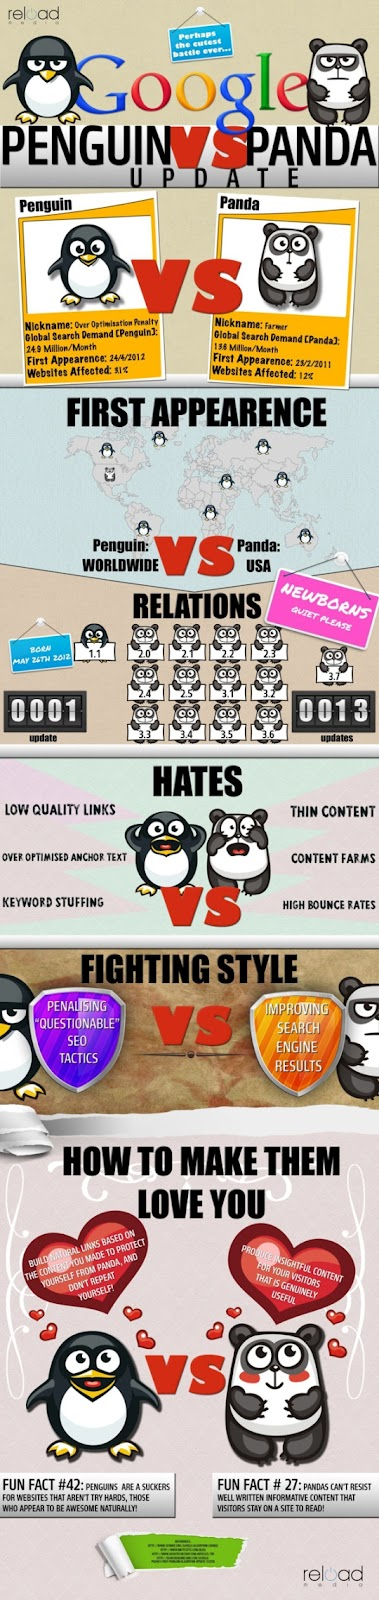 Infographic on Google Panda and Google Penguin